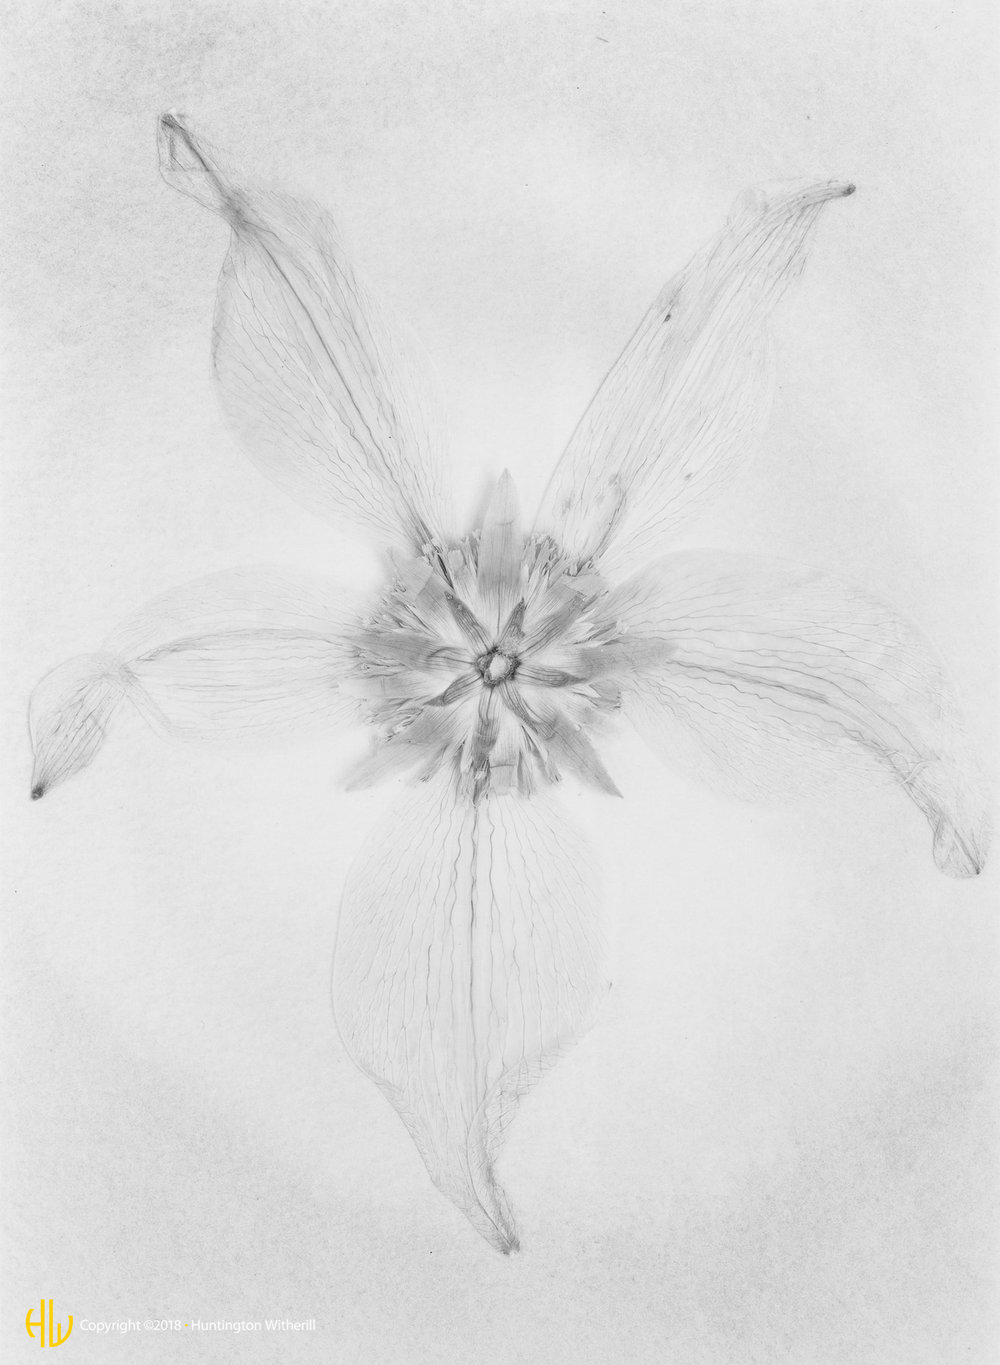 Untitled Flower, 1989